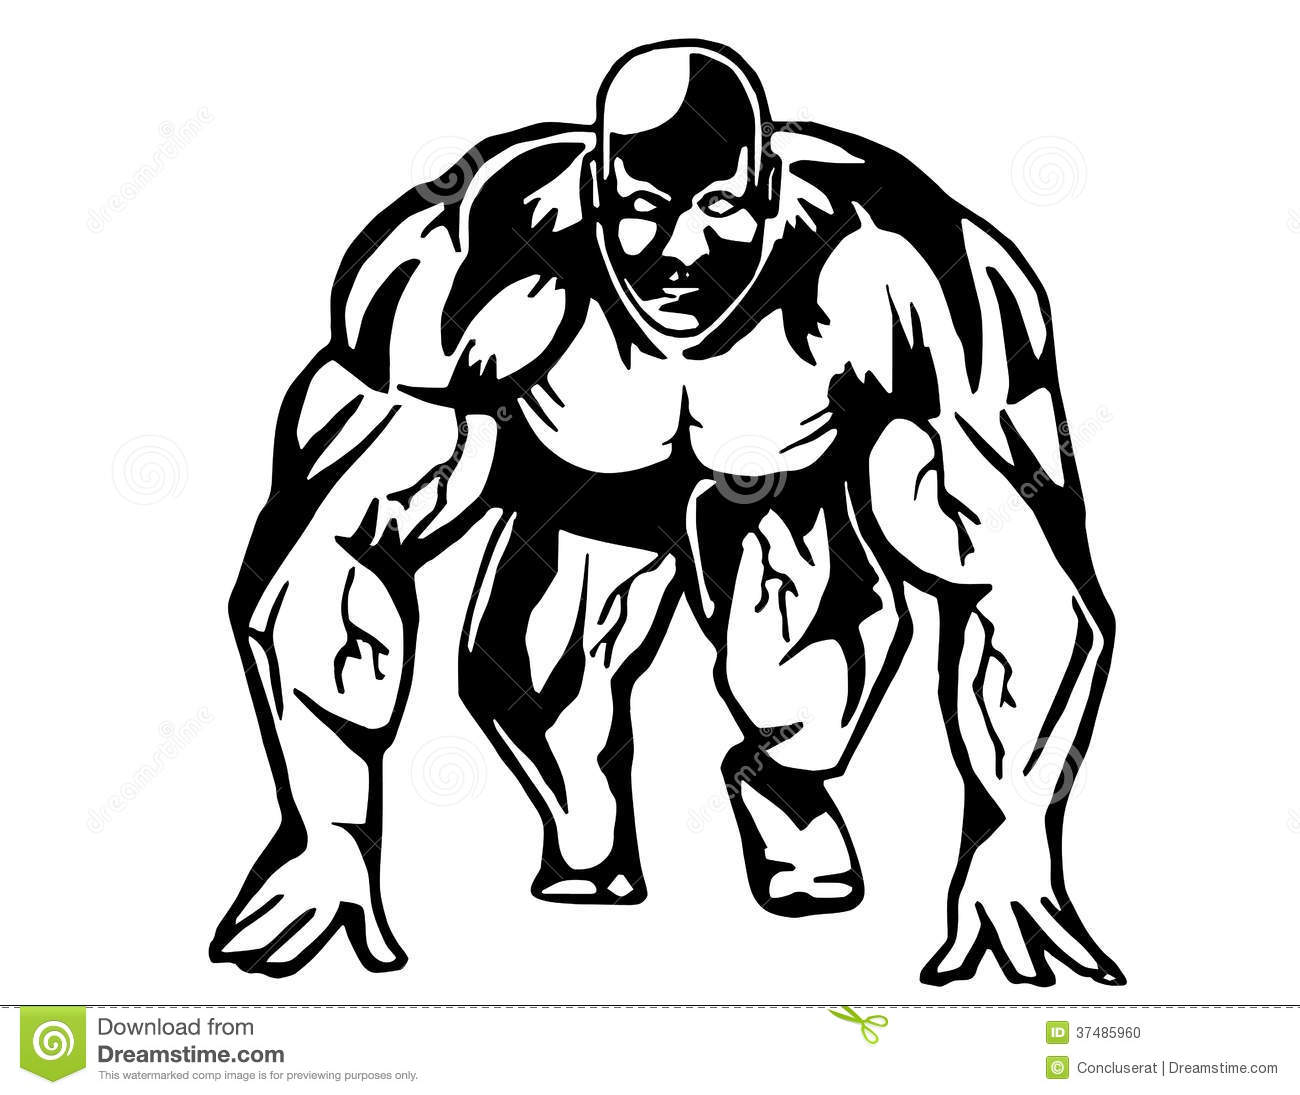 Running Bodybuilder Stock Vector Illustration Of Running